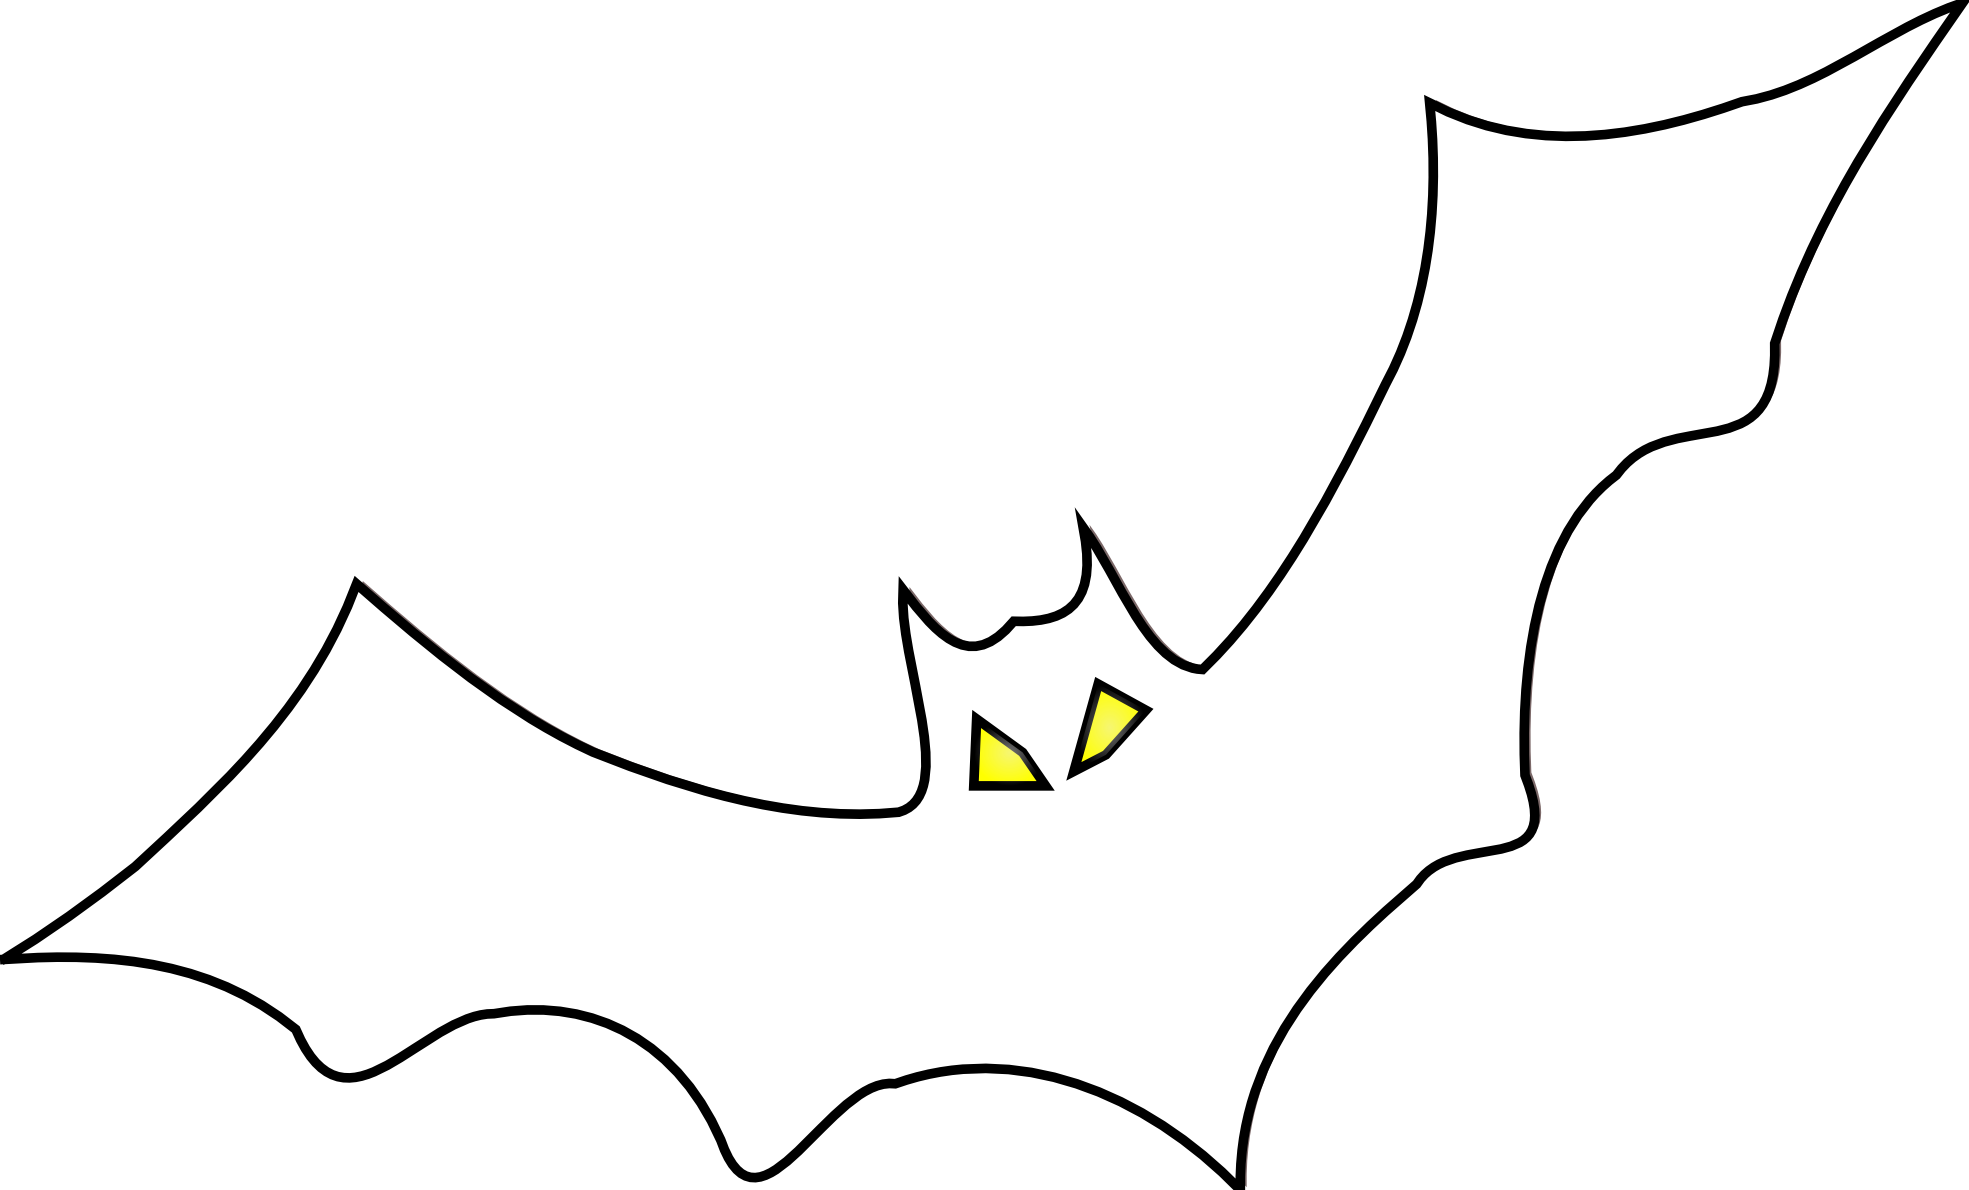 Halloween bats clipart clipart royalty free 28+ Collection of Halloween Bats Clipart Black And White | High ... clipart royalty free